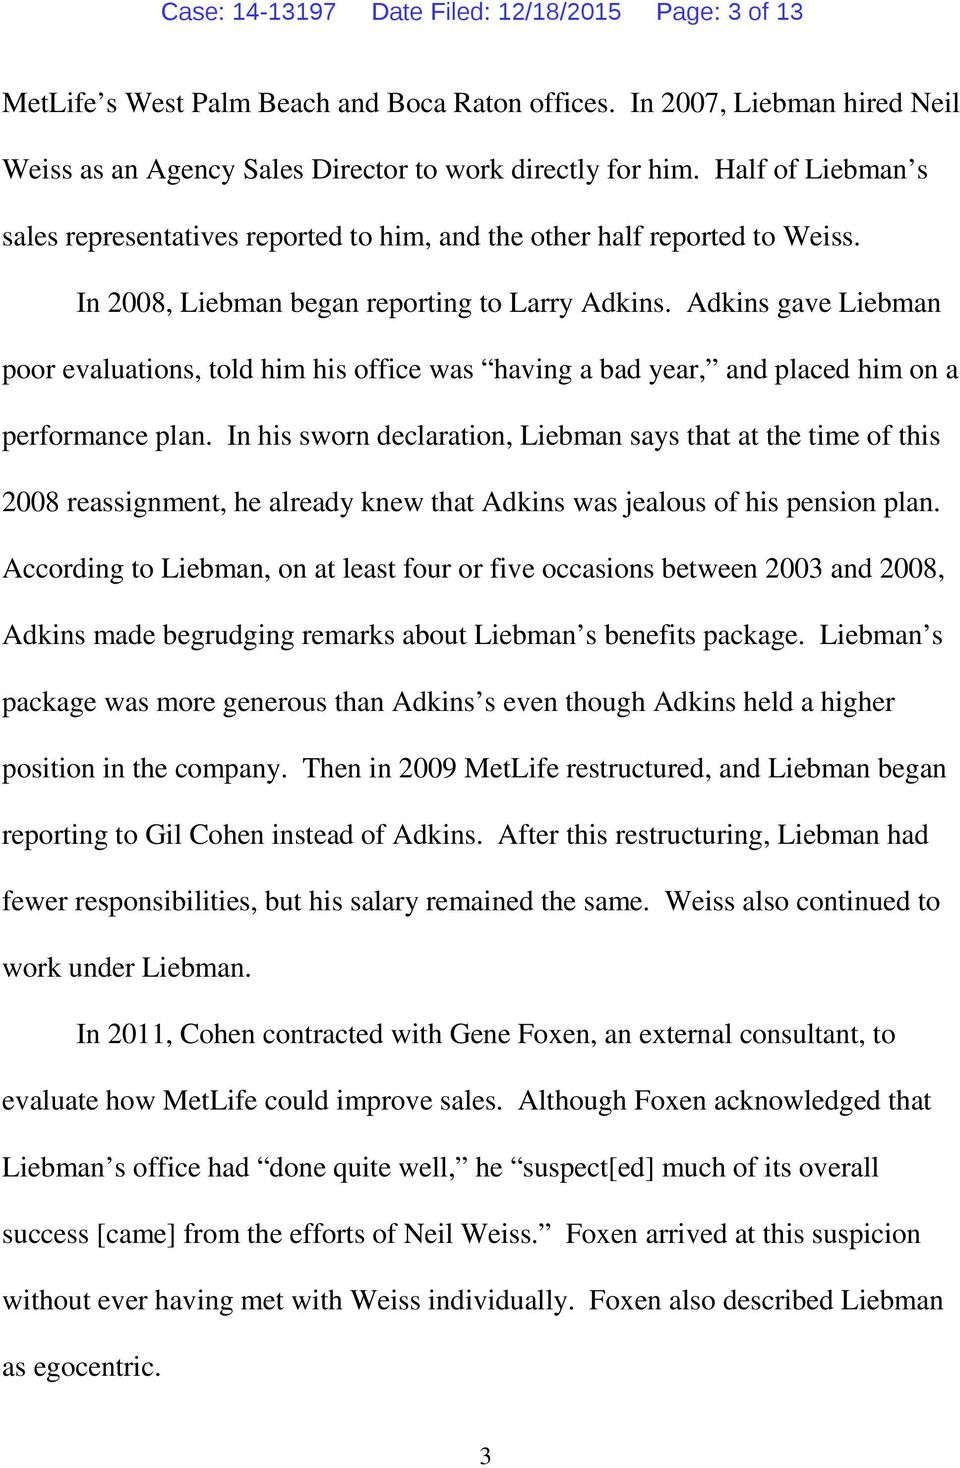 Adkins gave Liebman poor evaluations, told him his office was having a bad year, and placed him on a performance plan.